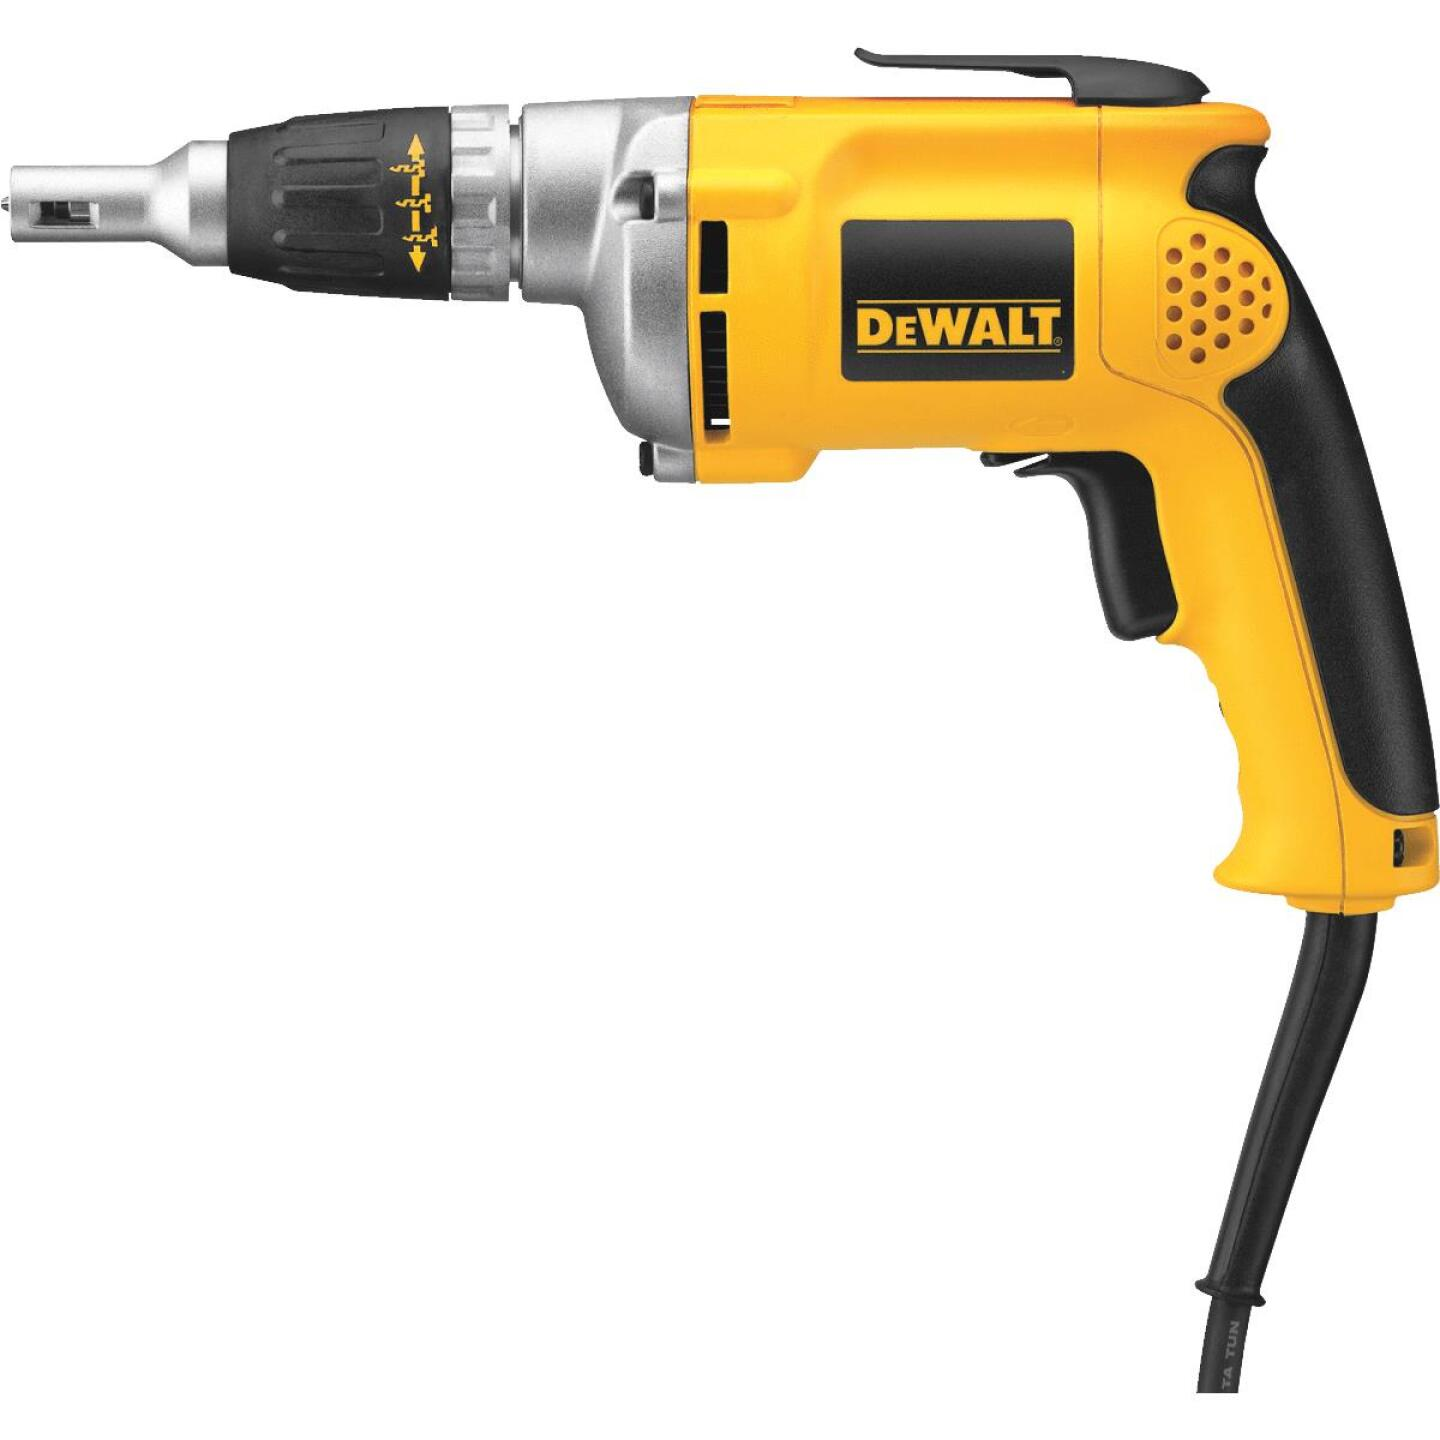 DeWalt 6.3A/4000 rpm 81 In./Lb. Torque Electric Screwgun Image 1